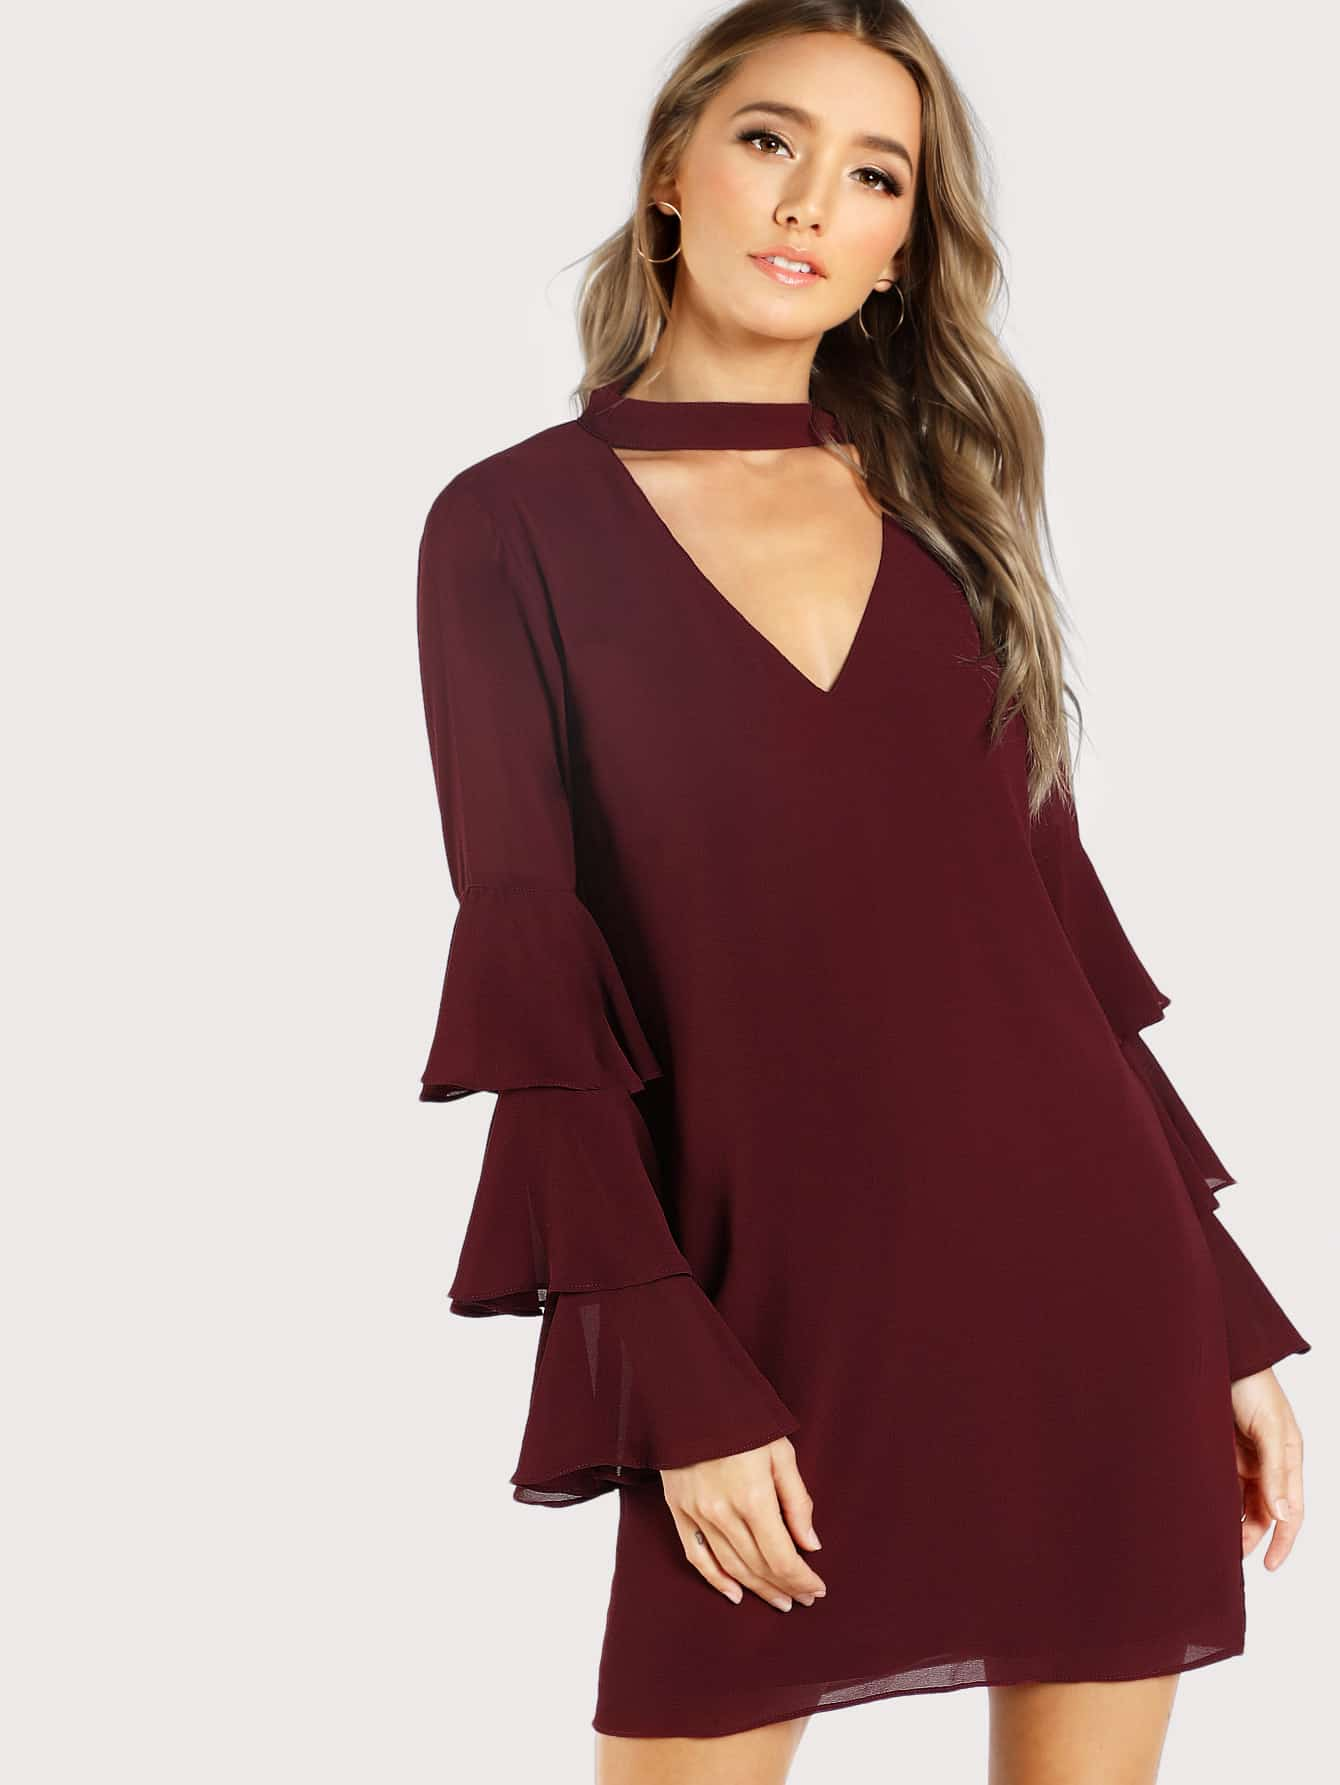 Choker Neck Layered Bell Sleeve Dress